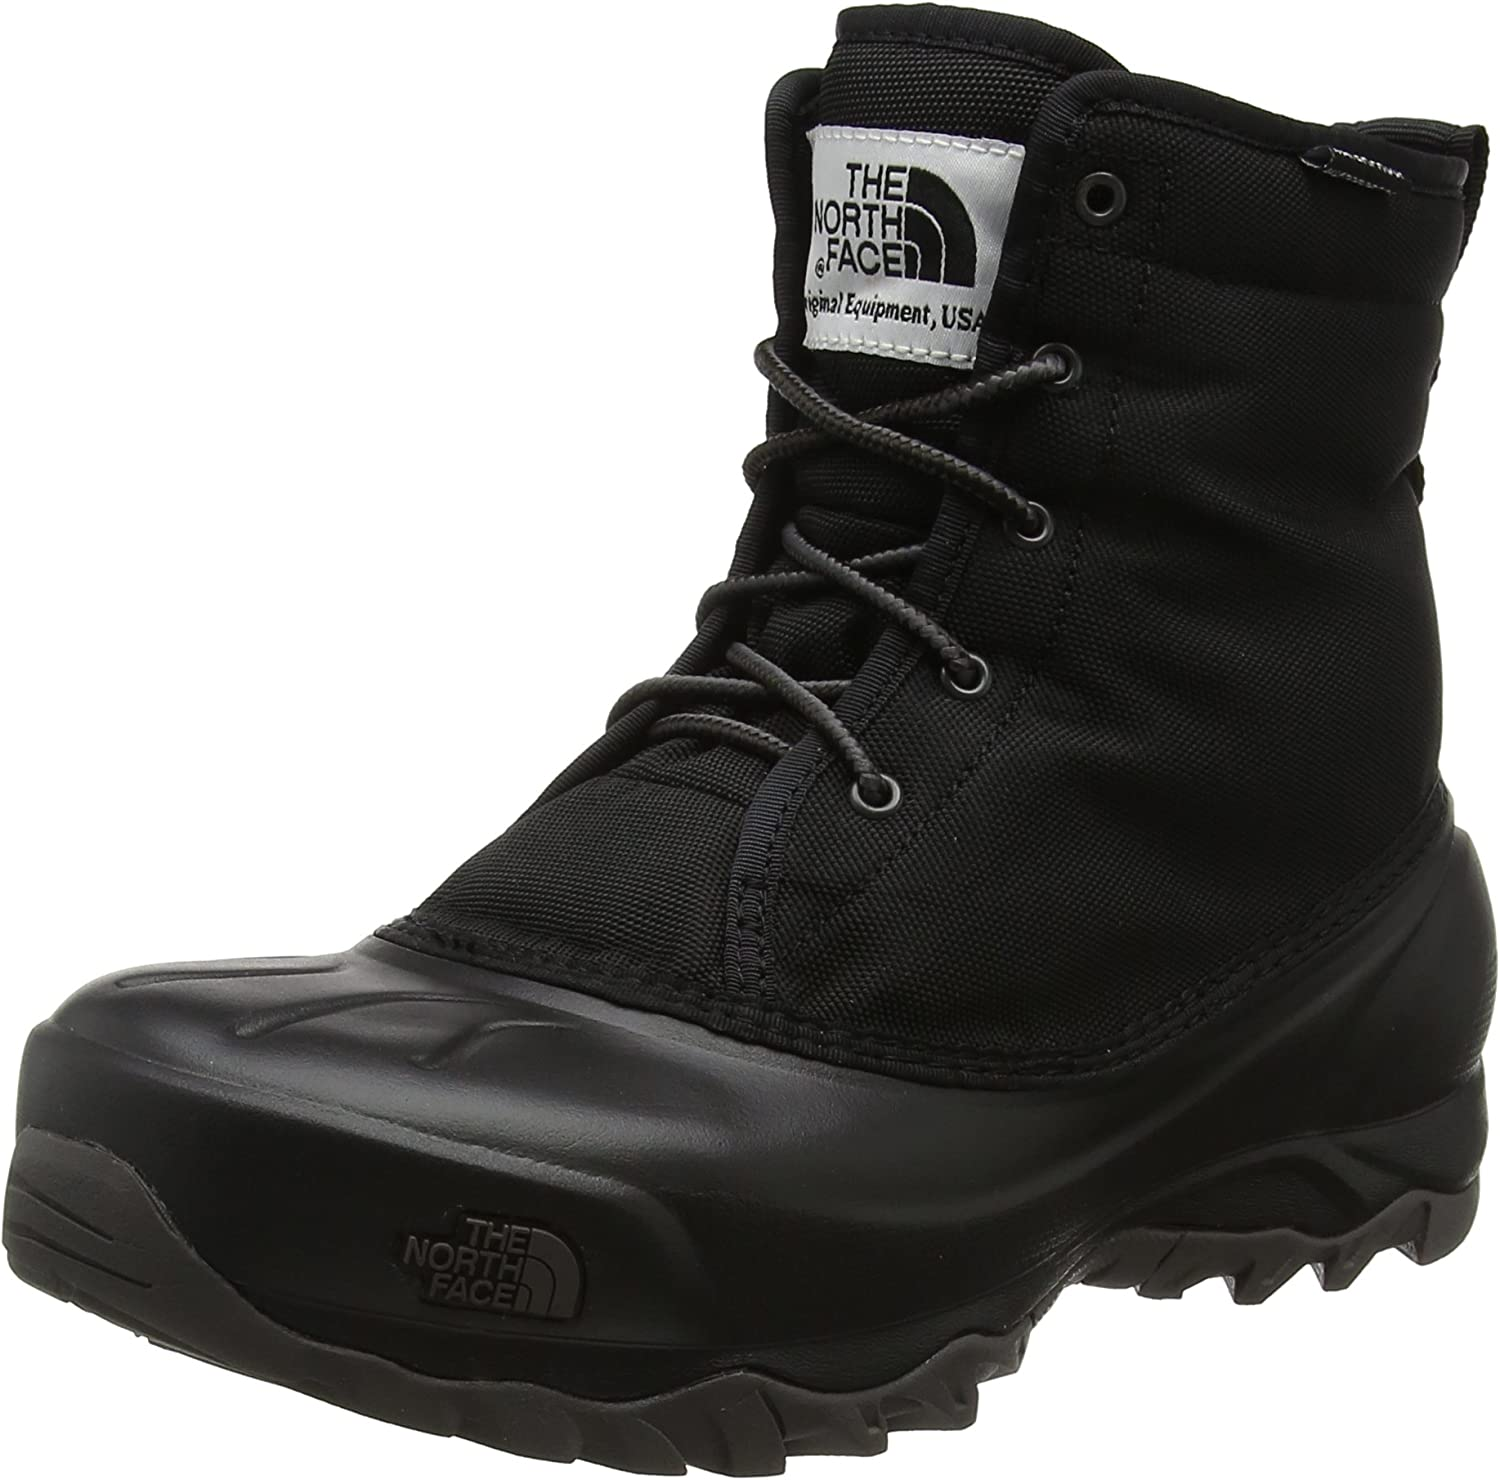 The North Face Women's Tsumoru Boots (Women's Sizes 7-10)